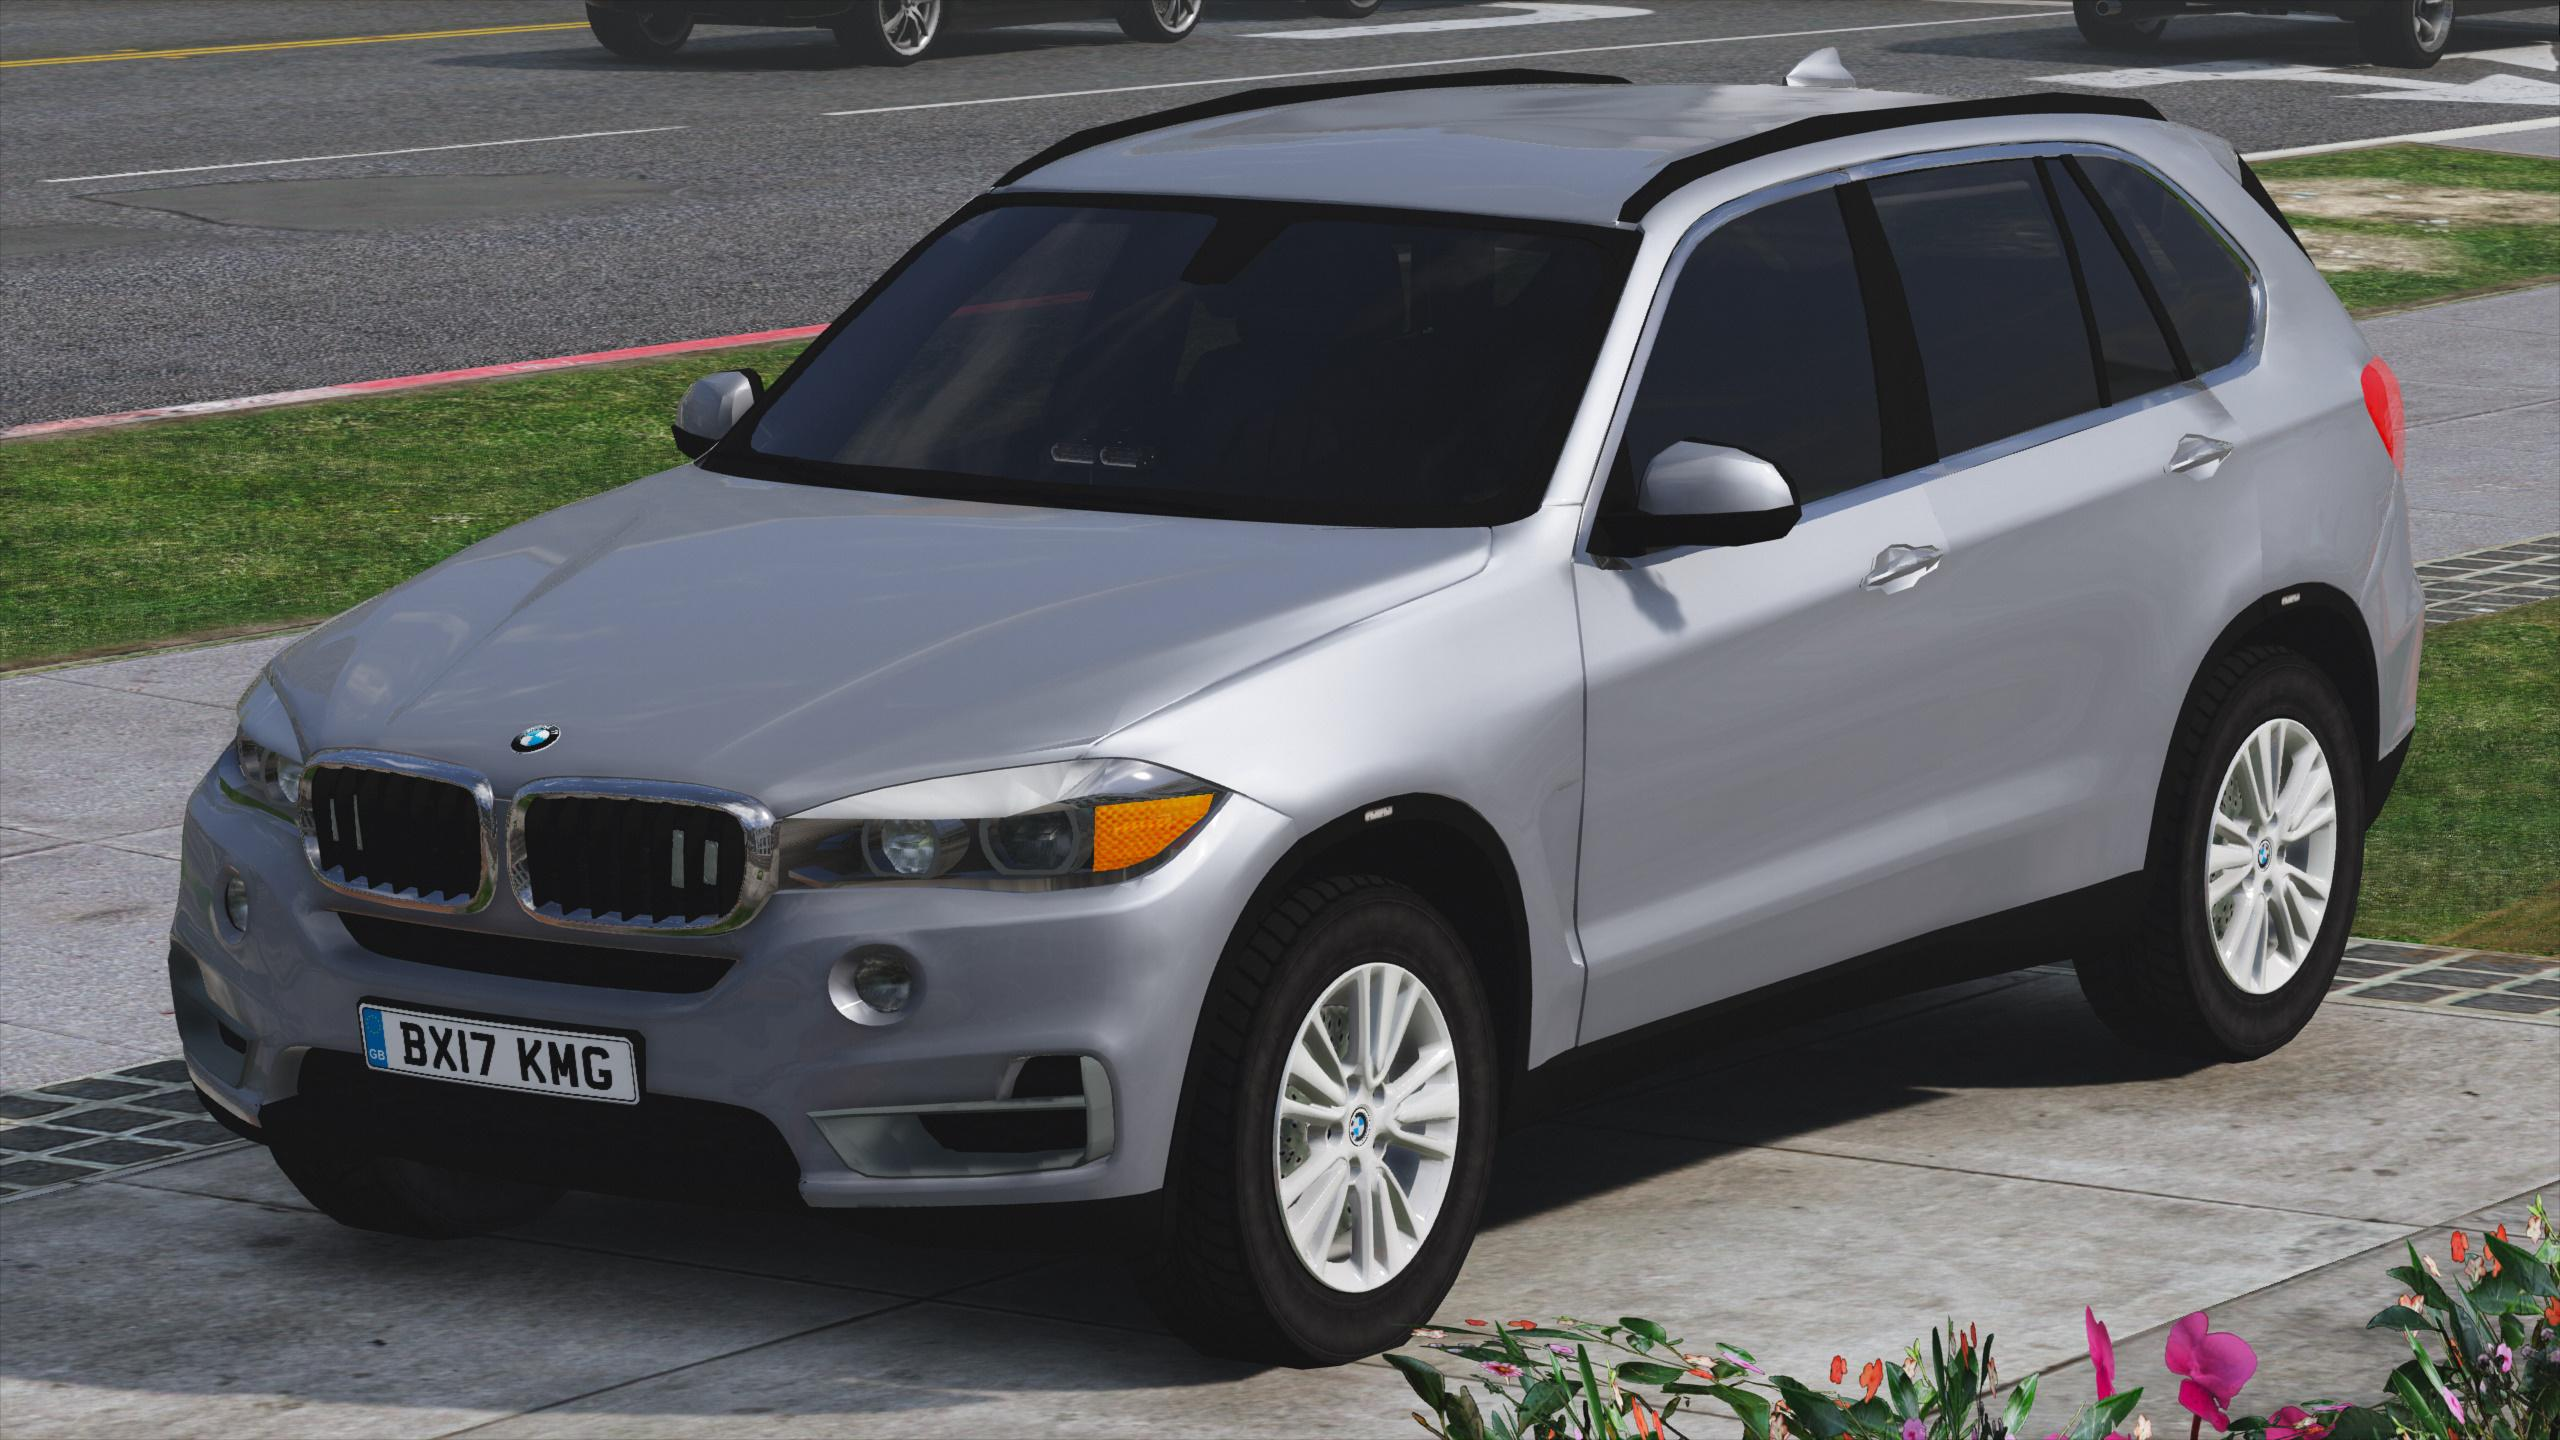 2016 unmarked bmw x5 gta5. Black Bedroom Furniture Sets. Home Design Ideas